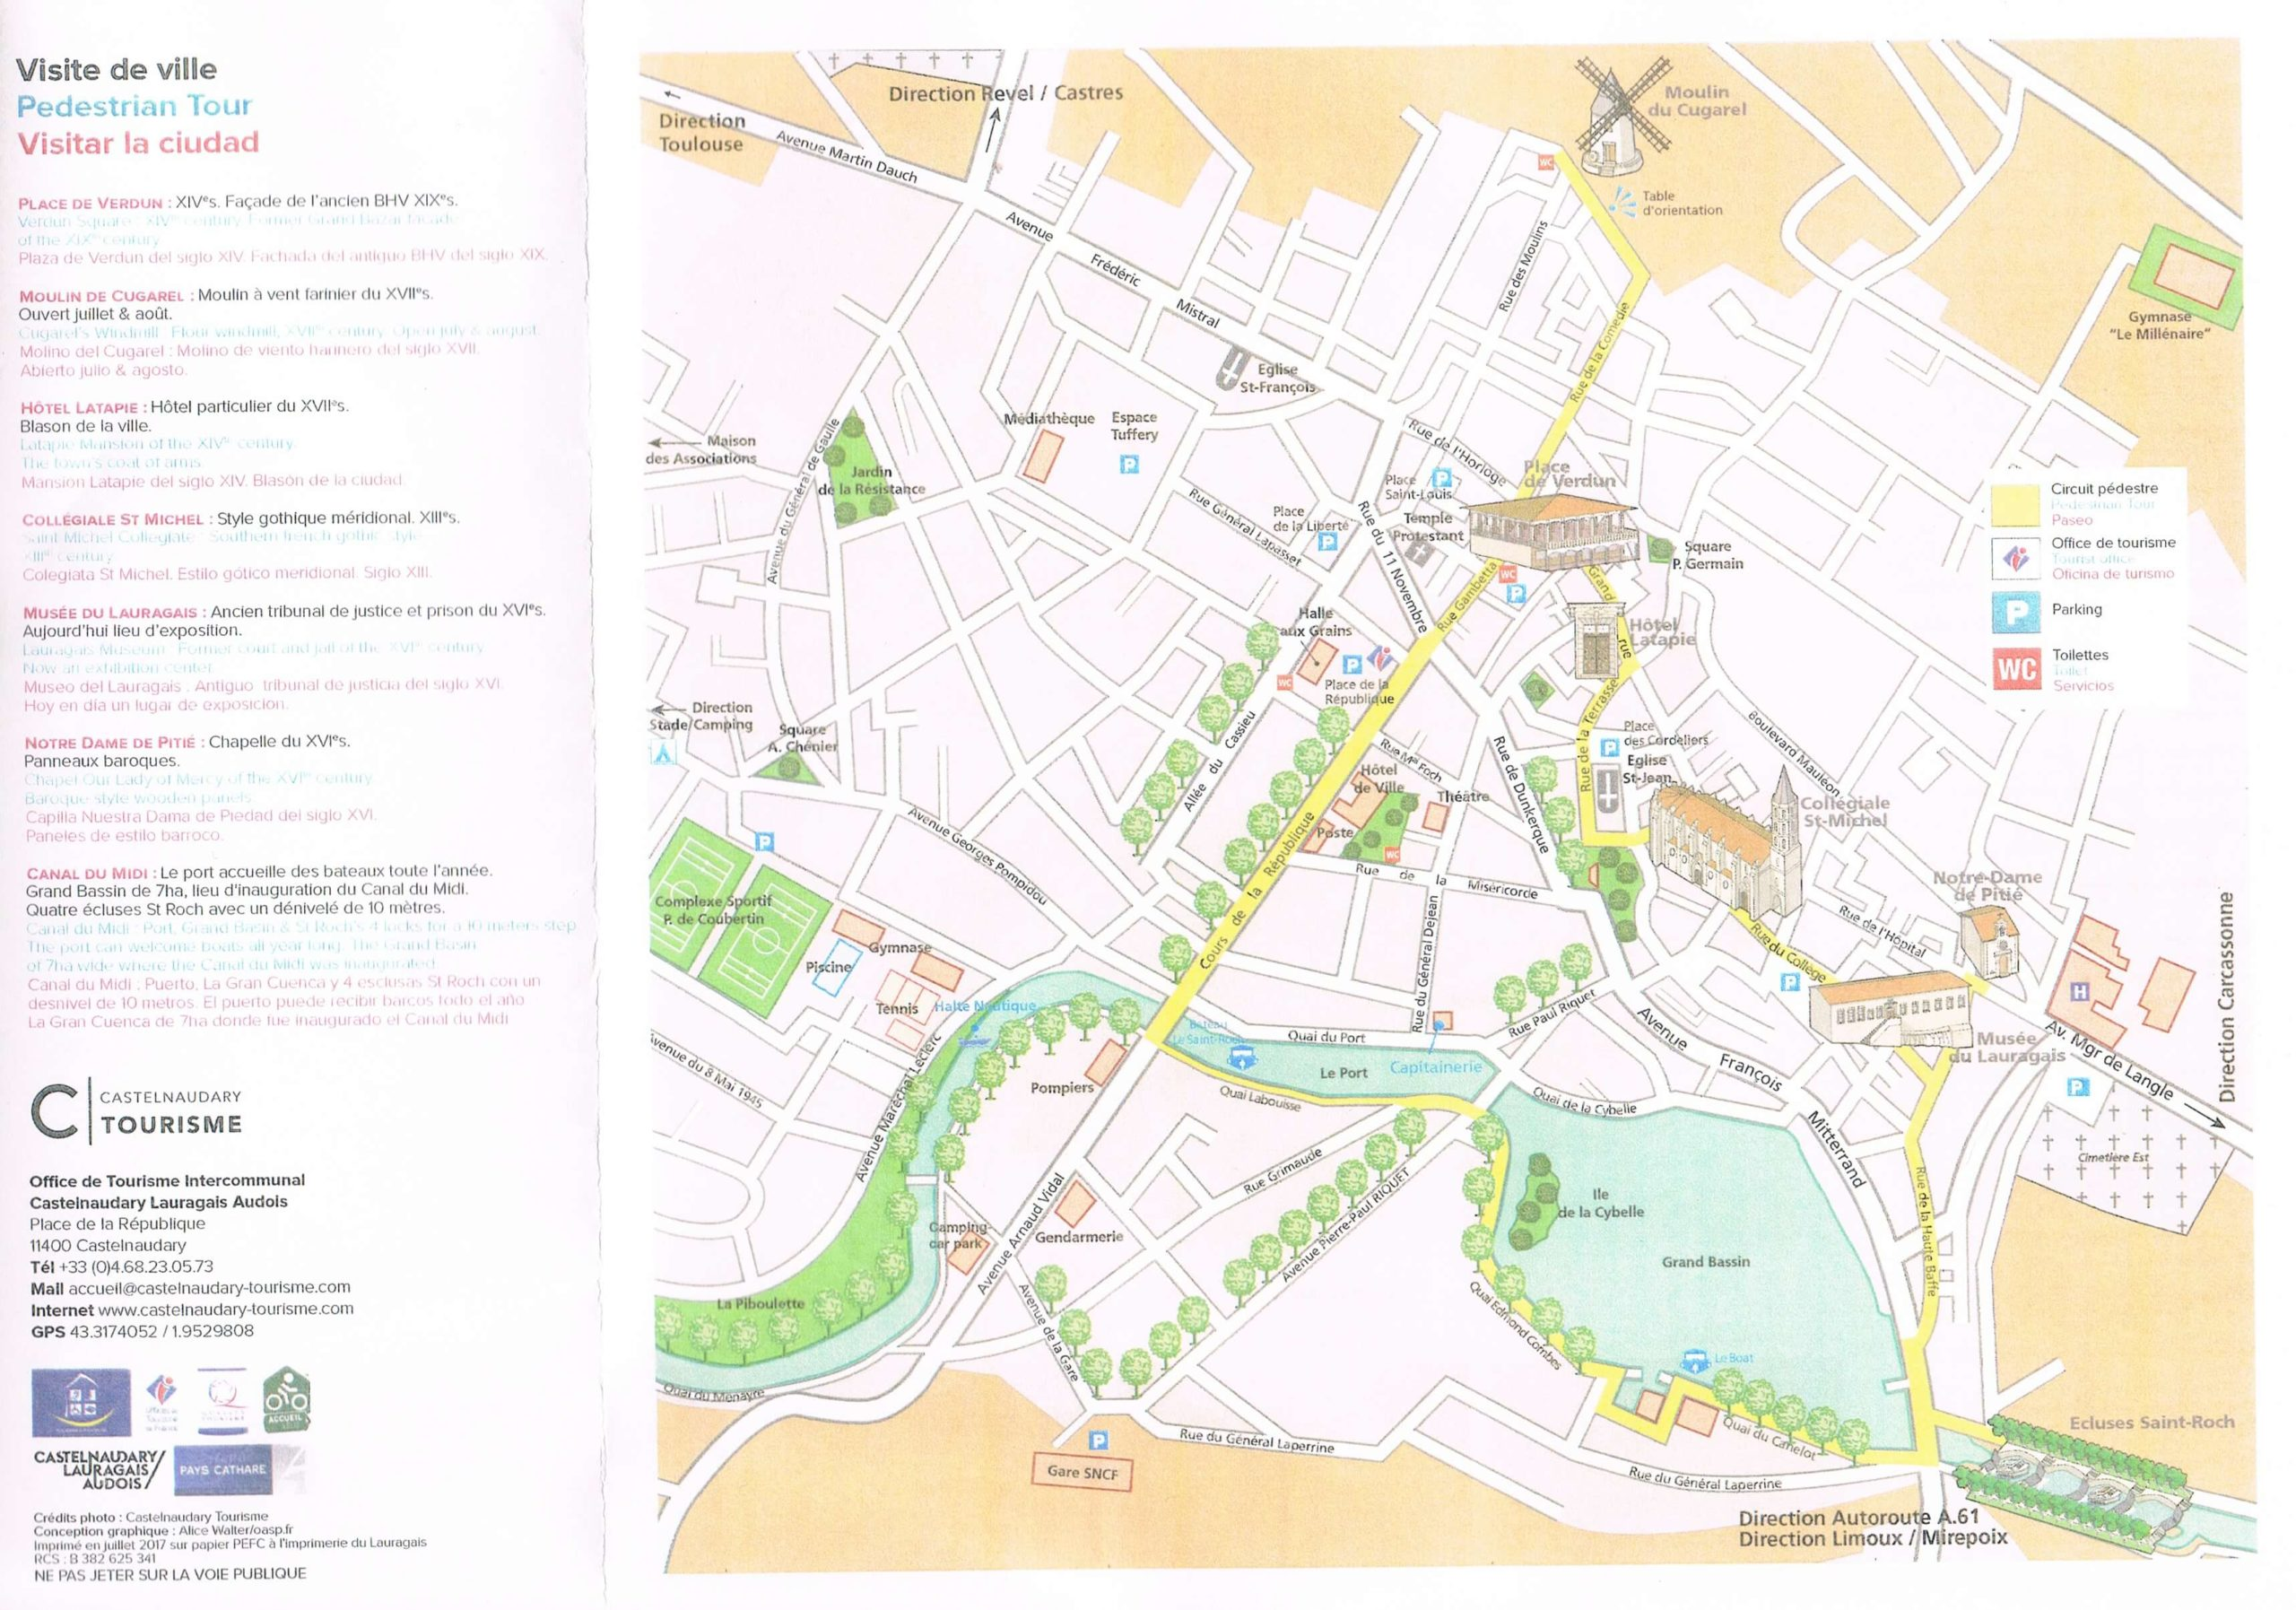 Castelnaudary Map and walking tour from the Tourist Office